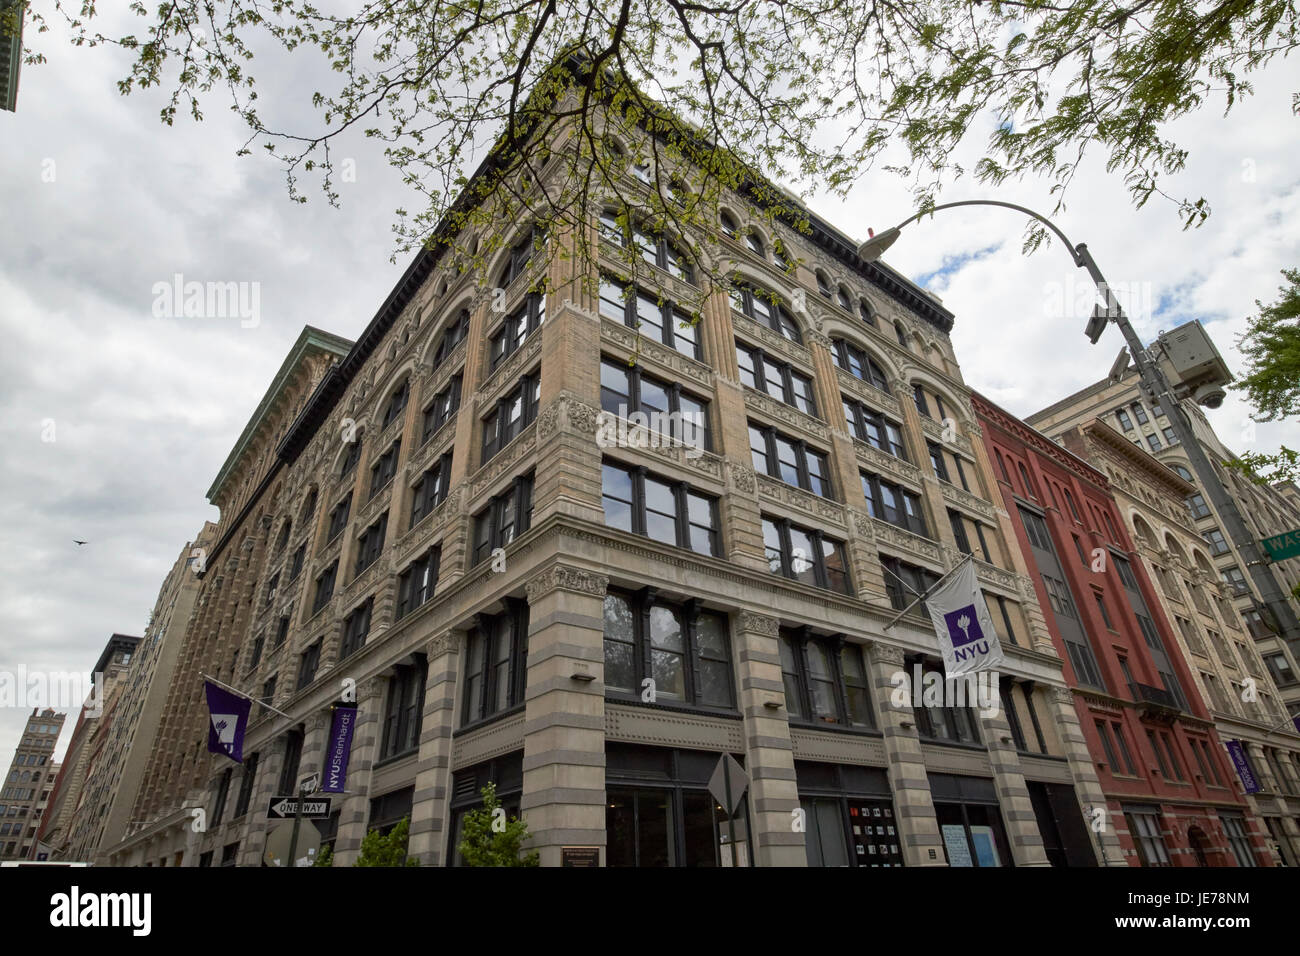 joseph violet and pless hall building greenwich village New York City USA - Stock Image